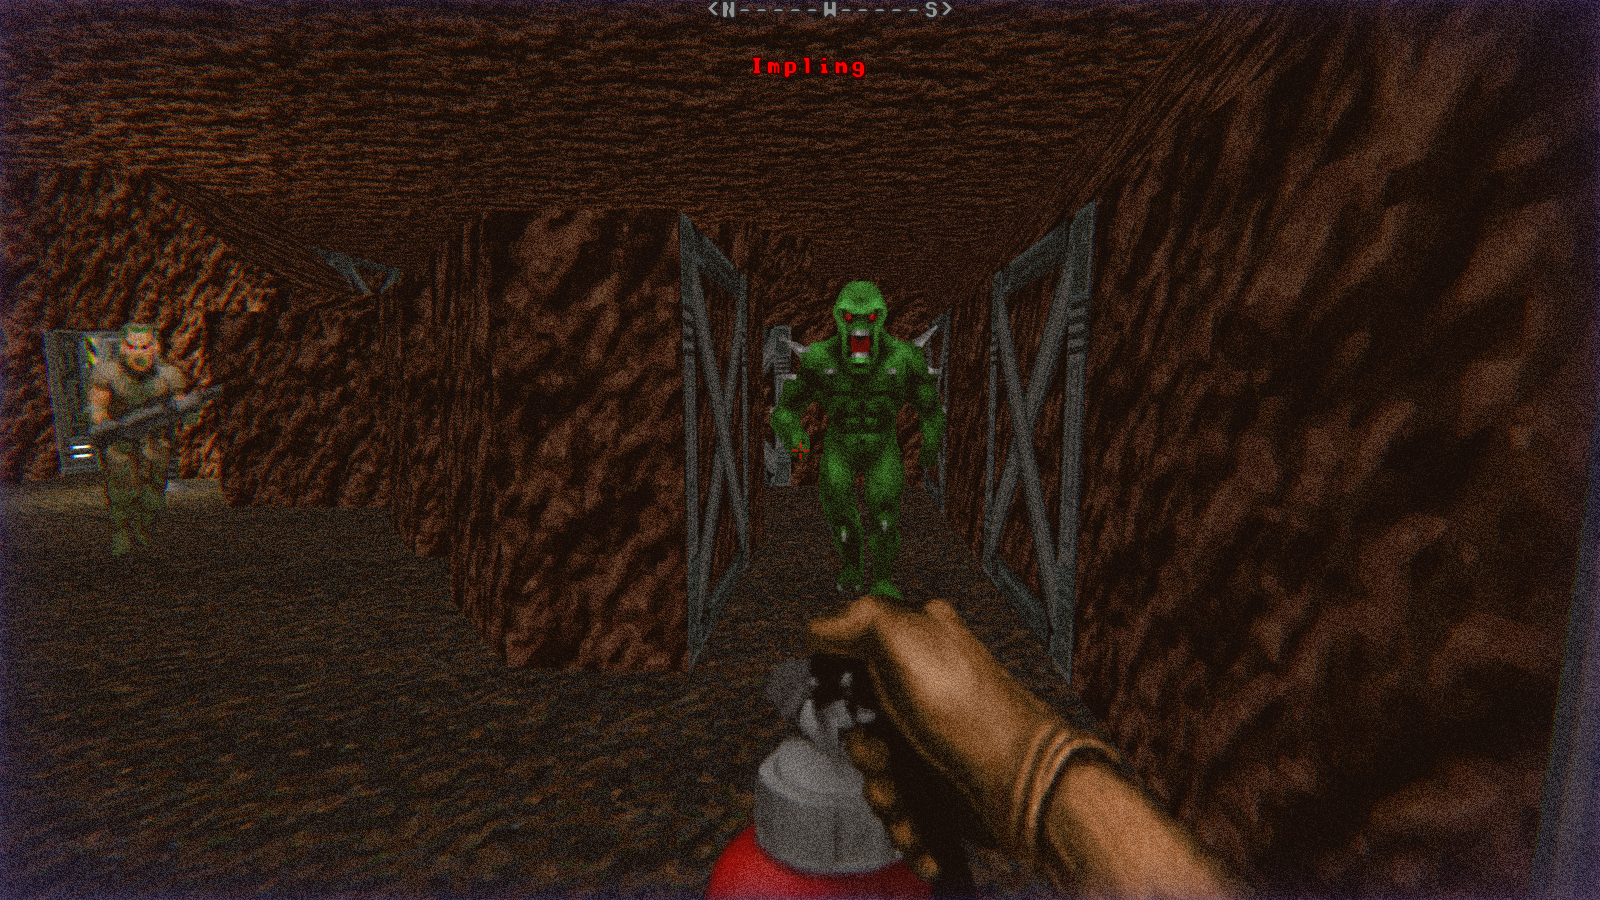 DRRP Doom RPG Remake Project SEC2 Sector 2 Impling Zombie Pvt Fire Extinguisher Caves Screenshot